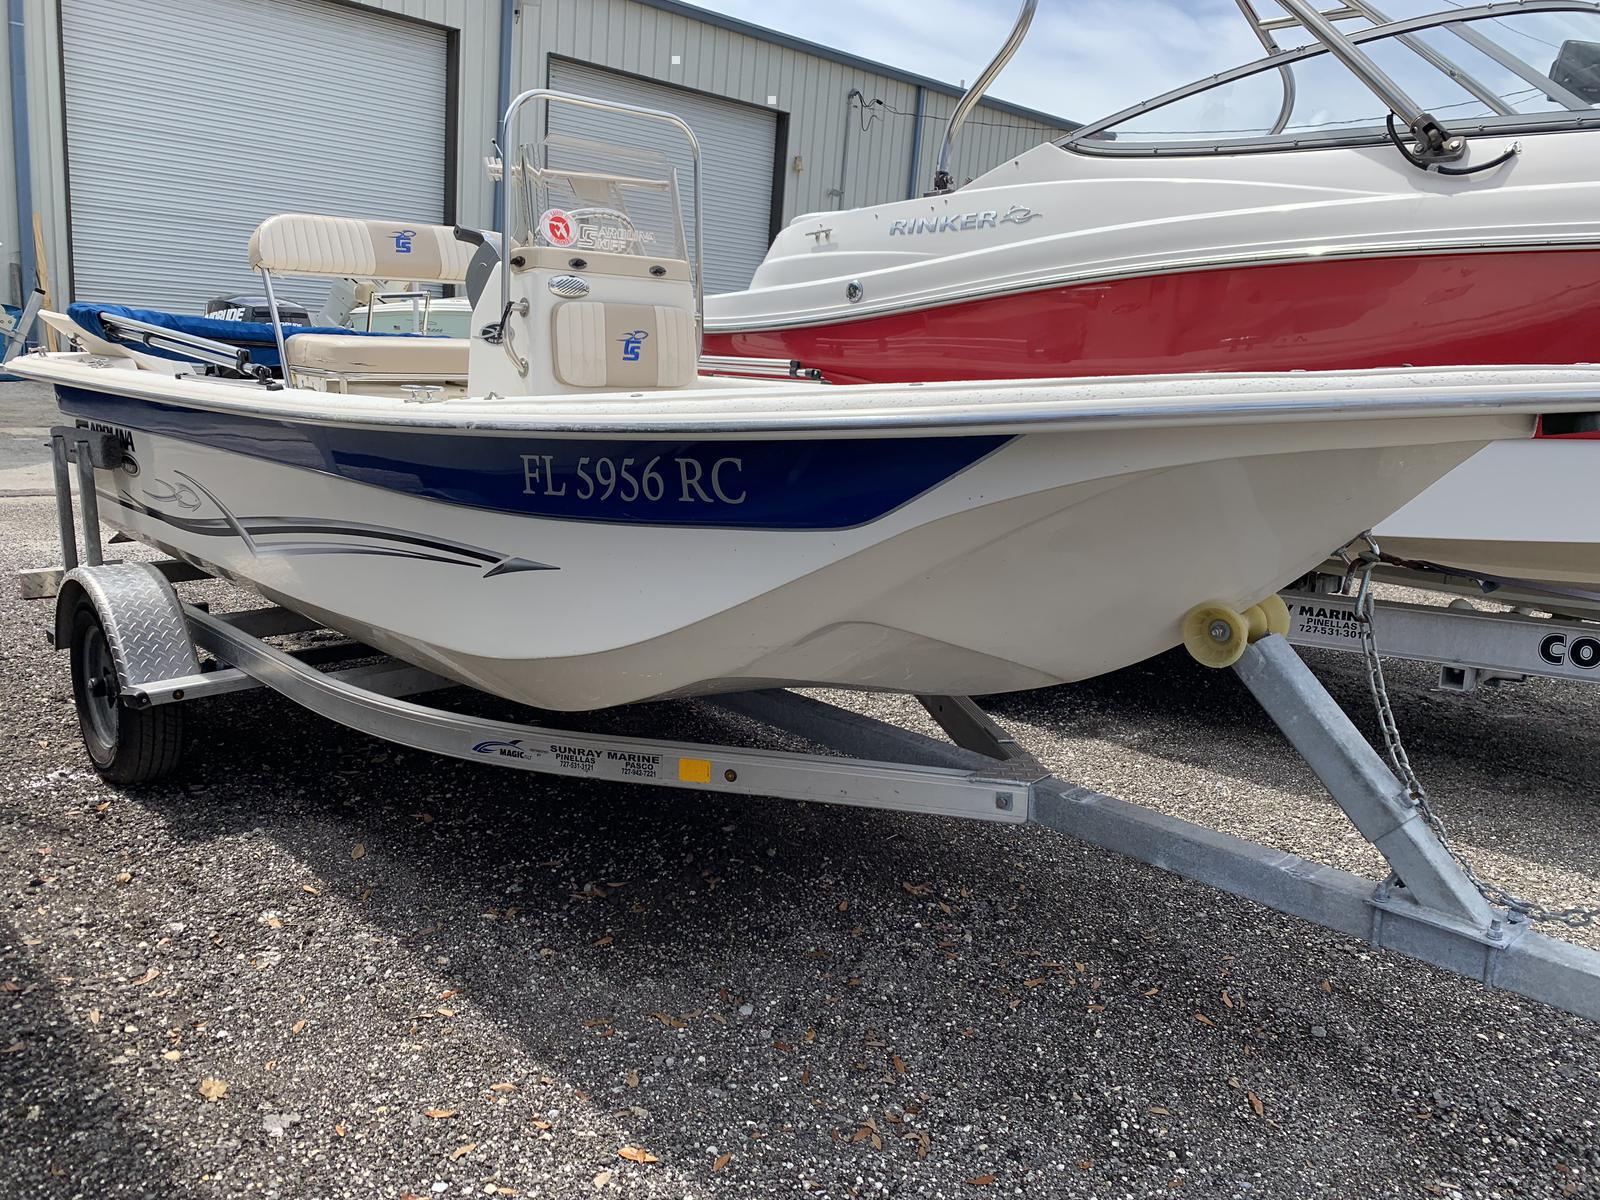 Inventory from Carolina Skiff and Stingray Boats Sunray Marine